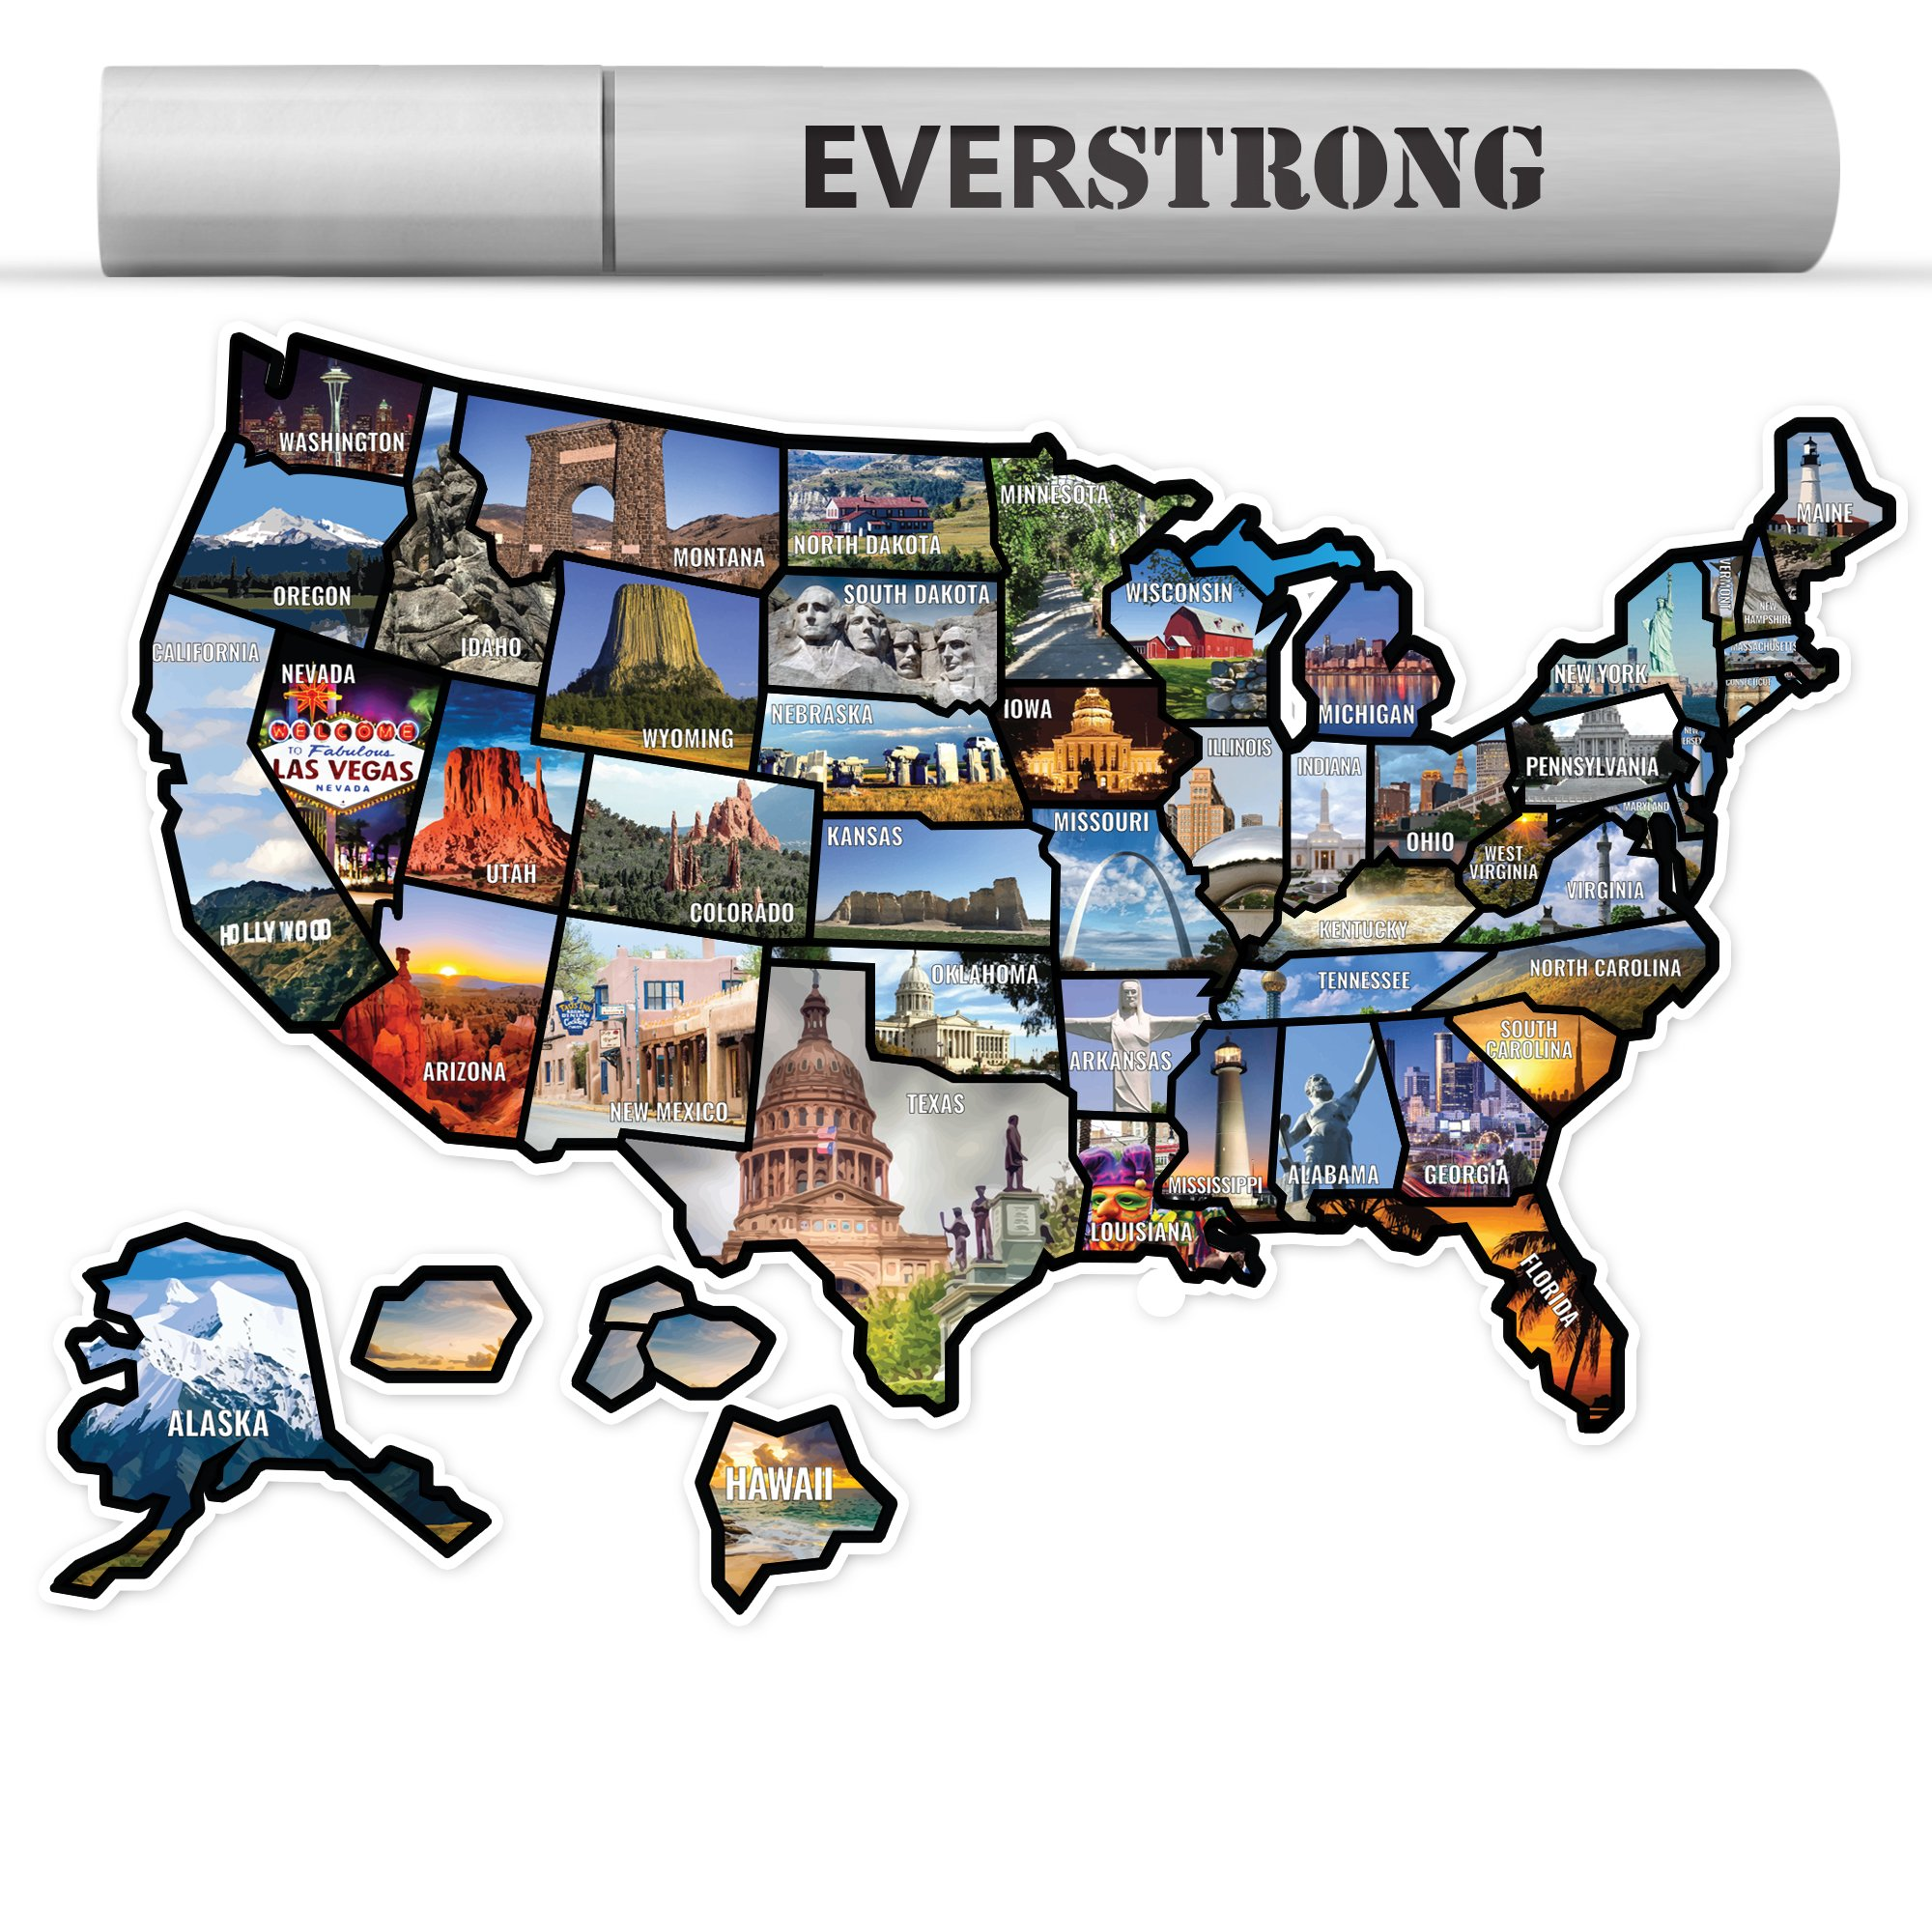 EverStrong Camper RV Decal Sticker For MotorHome Trailer - Camper Accessories - RV Accessories - Camper Decal - 21'' by 15''